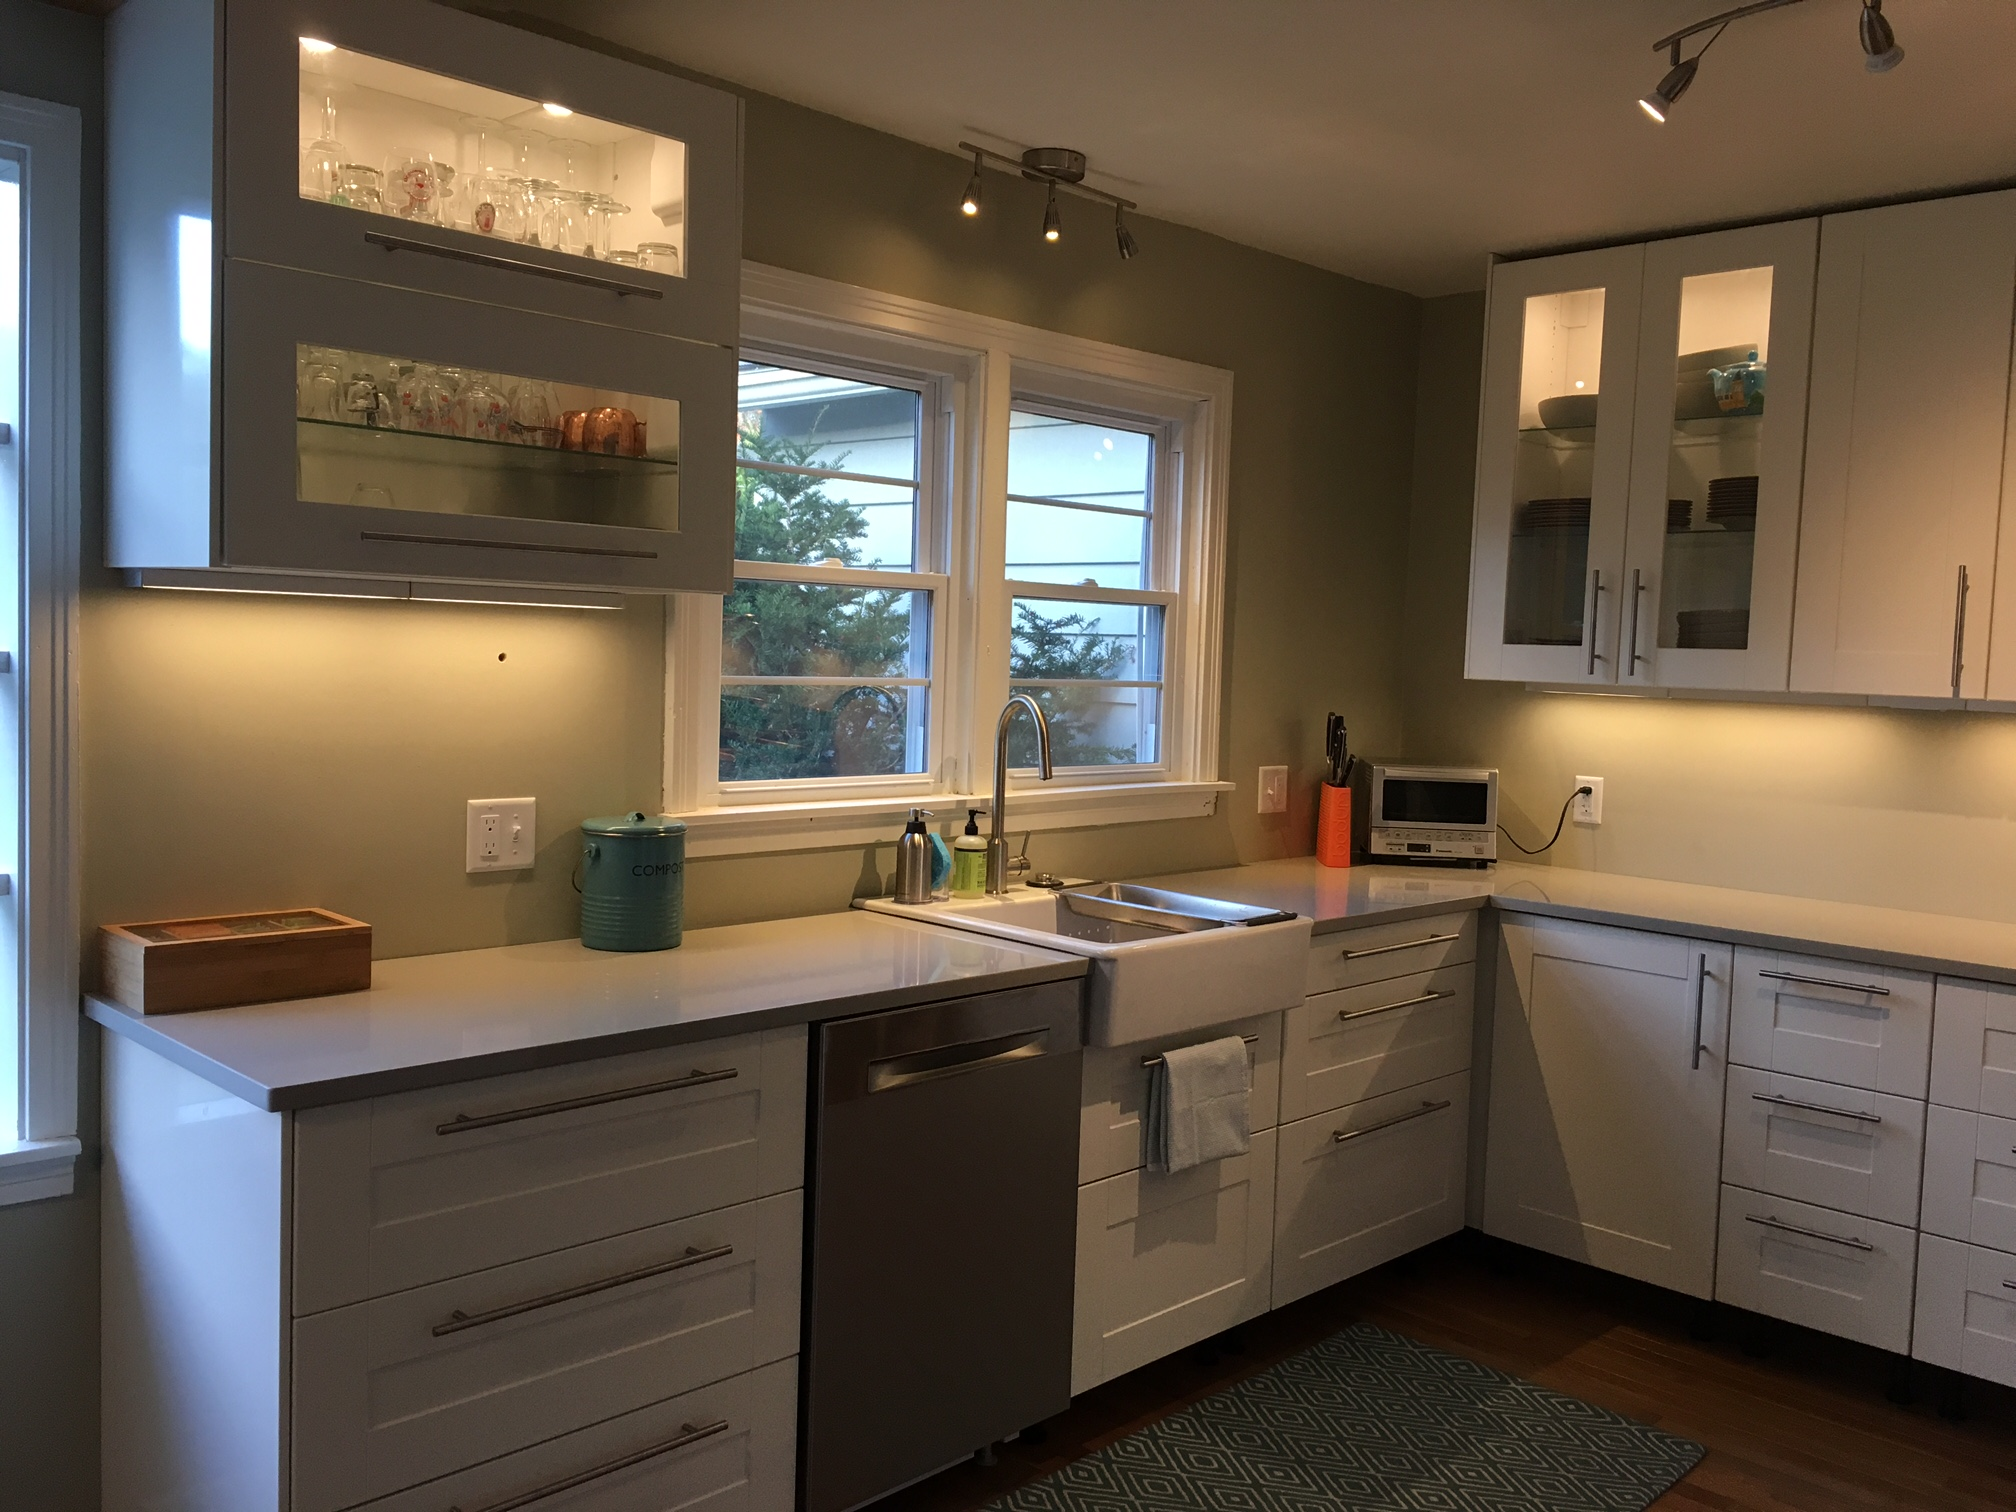 Ikea Off White Kitchen Cabinets A Gorgeous Ikea Kitchen Renovation In Upstate New York